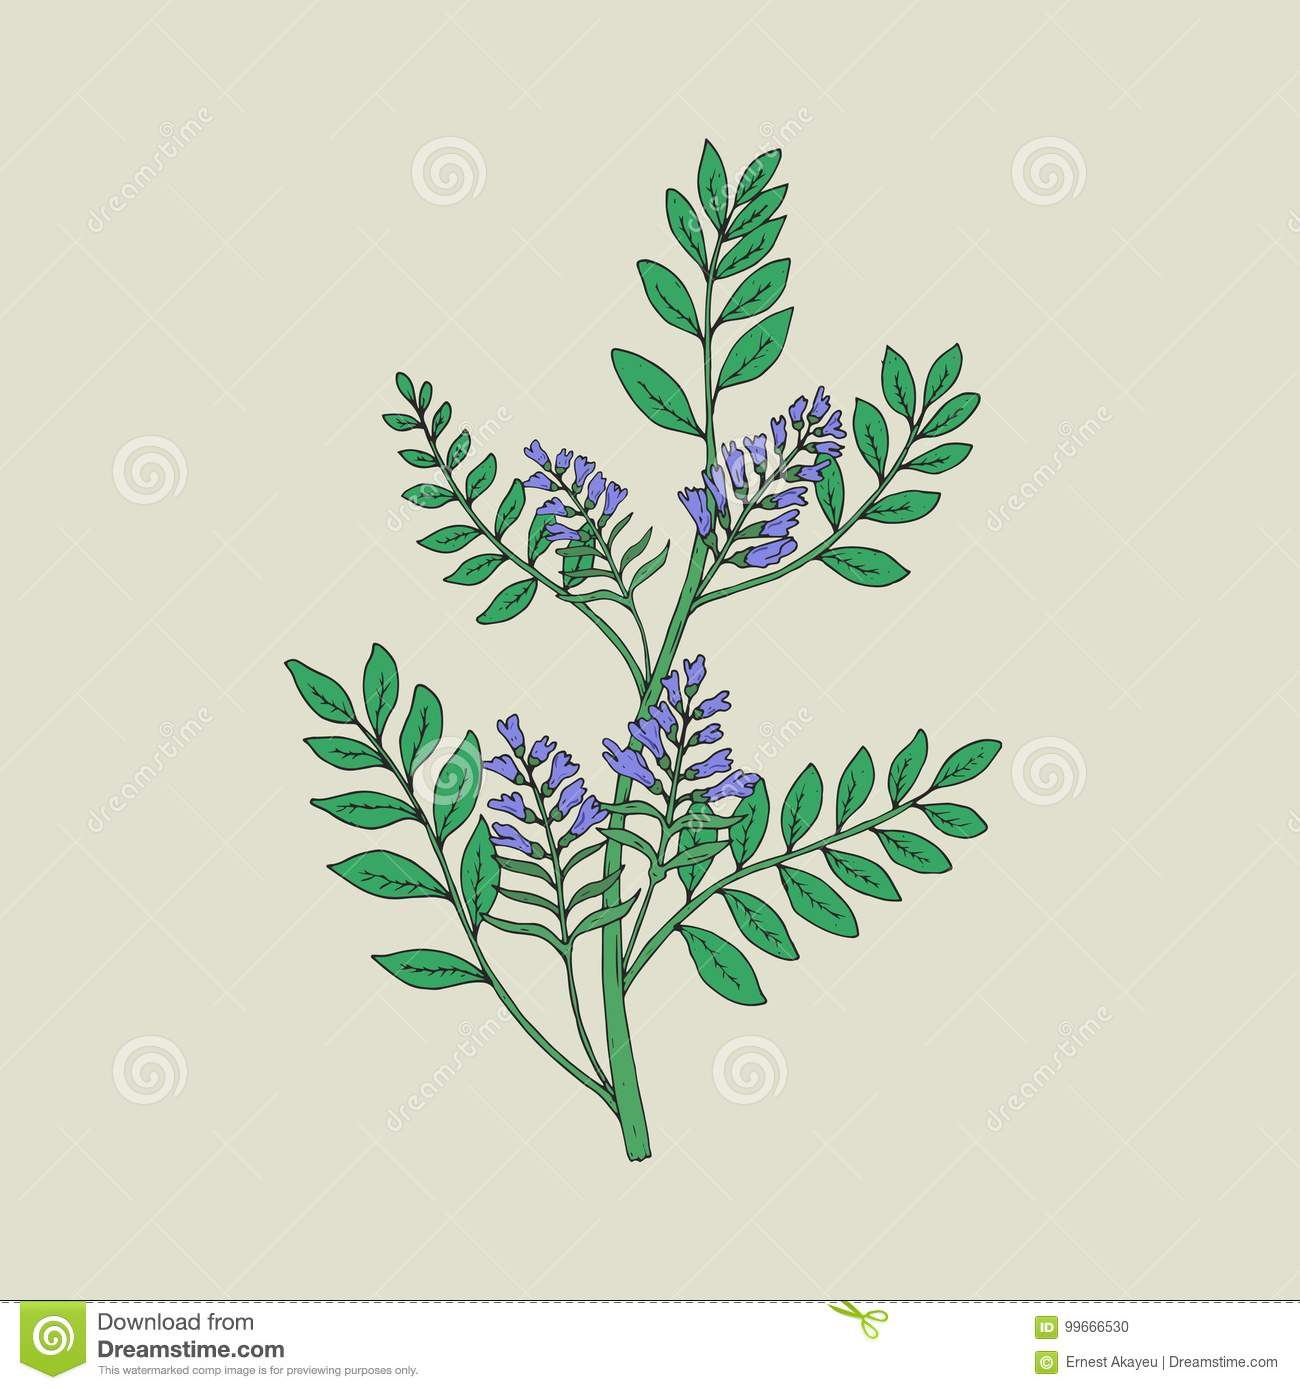 Pretty Botanical Drawing Of Blooming Licorice Plant With